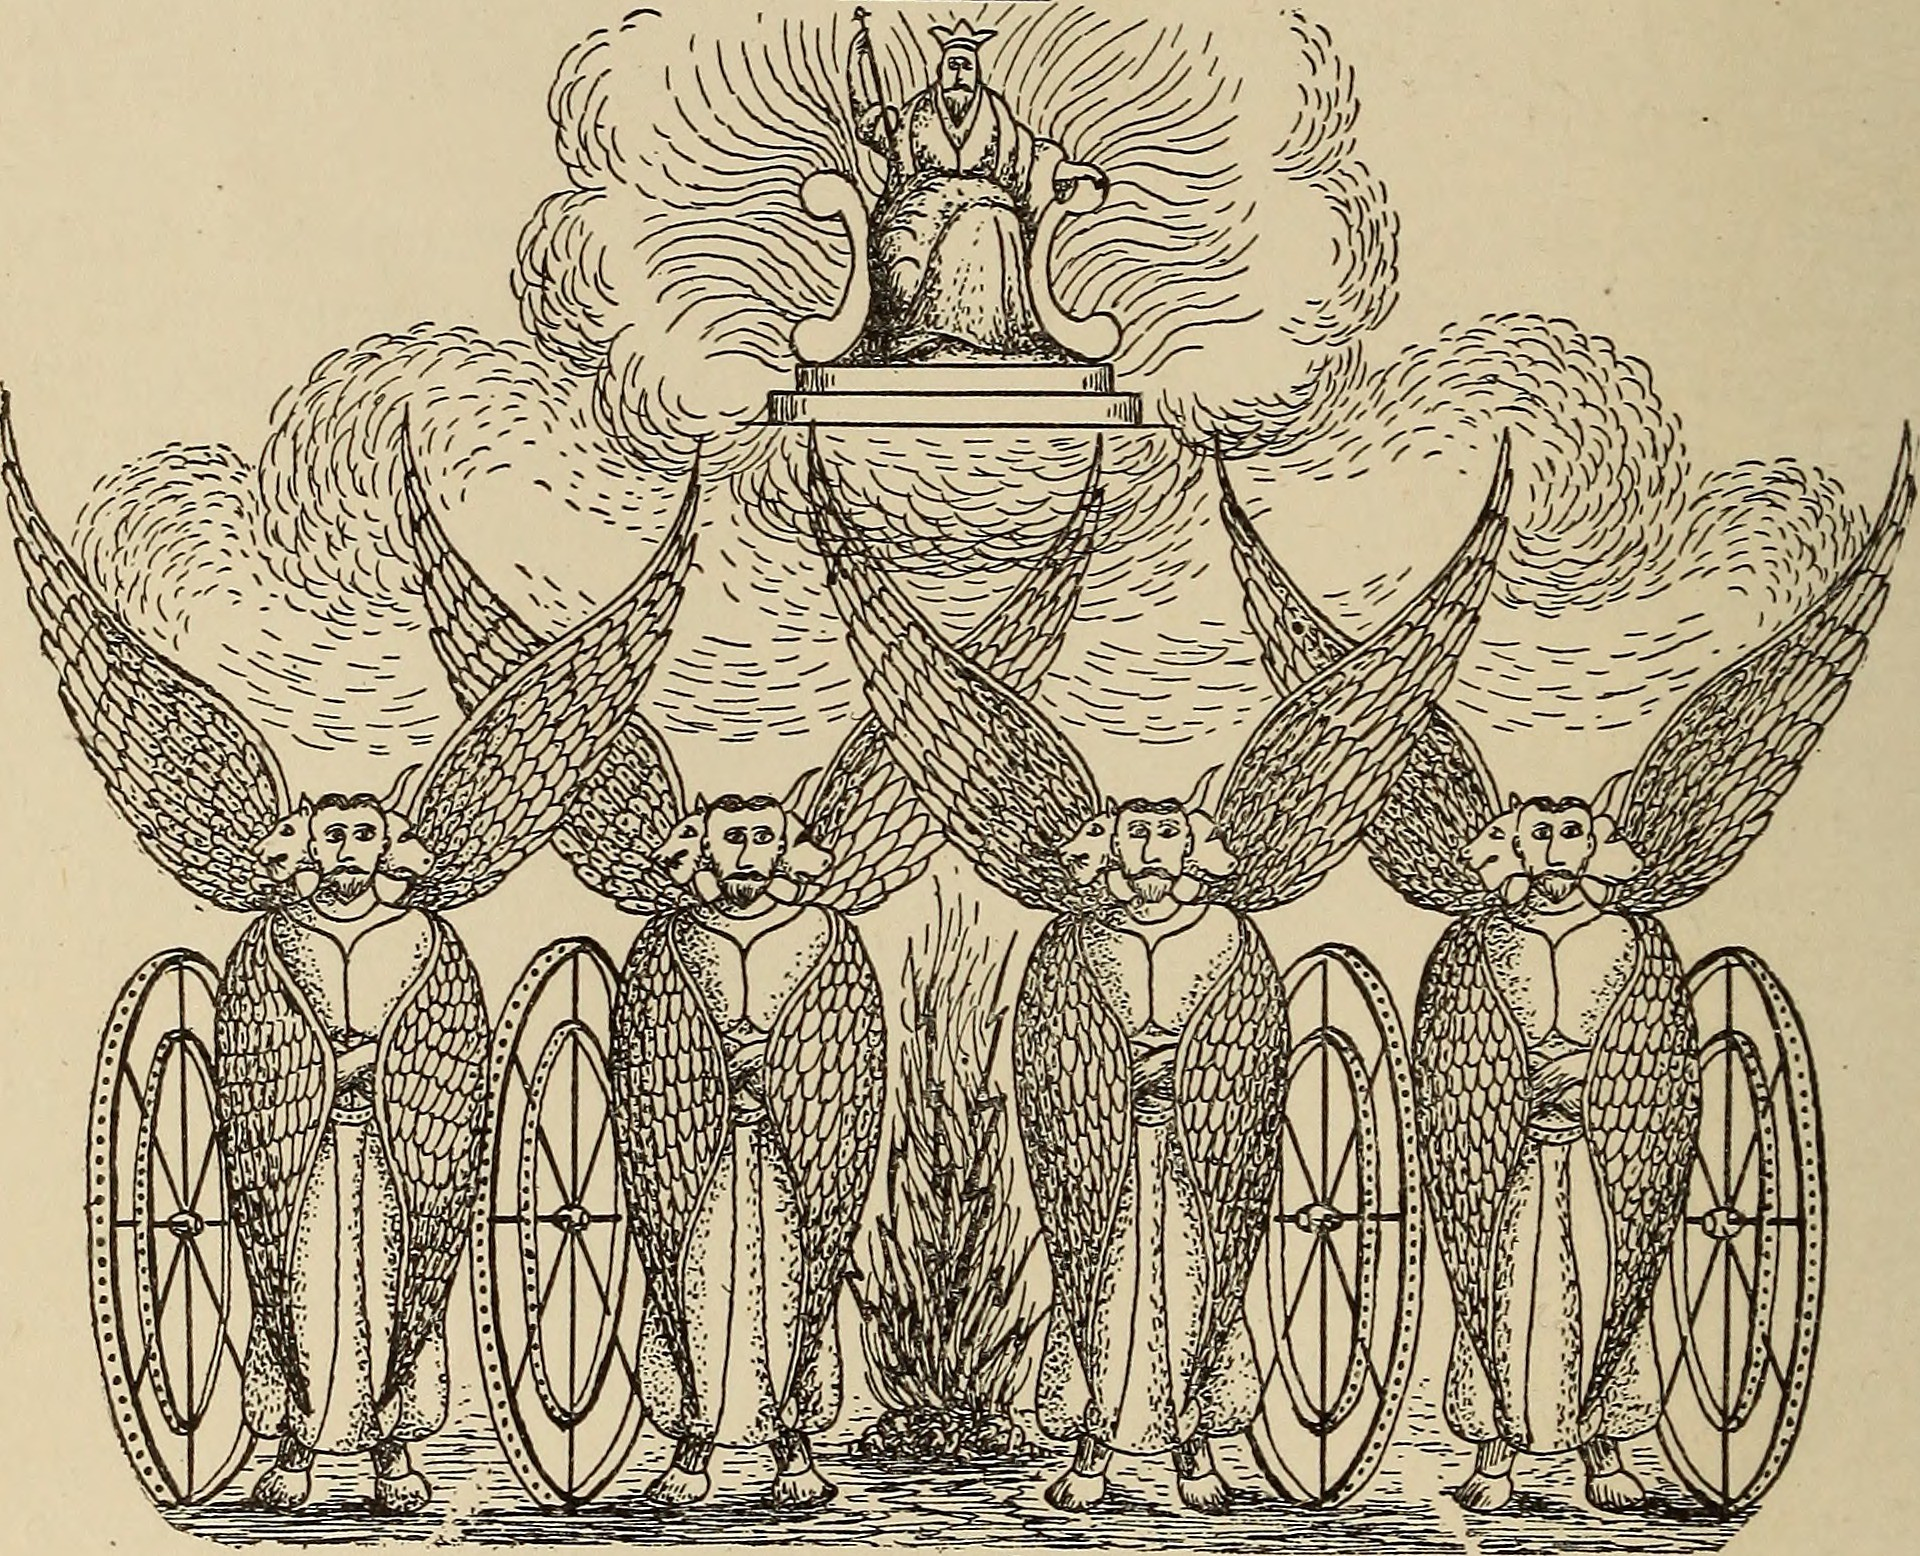 $ angels below the throne of God